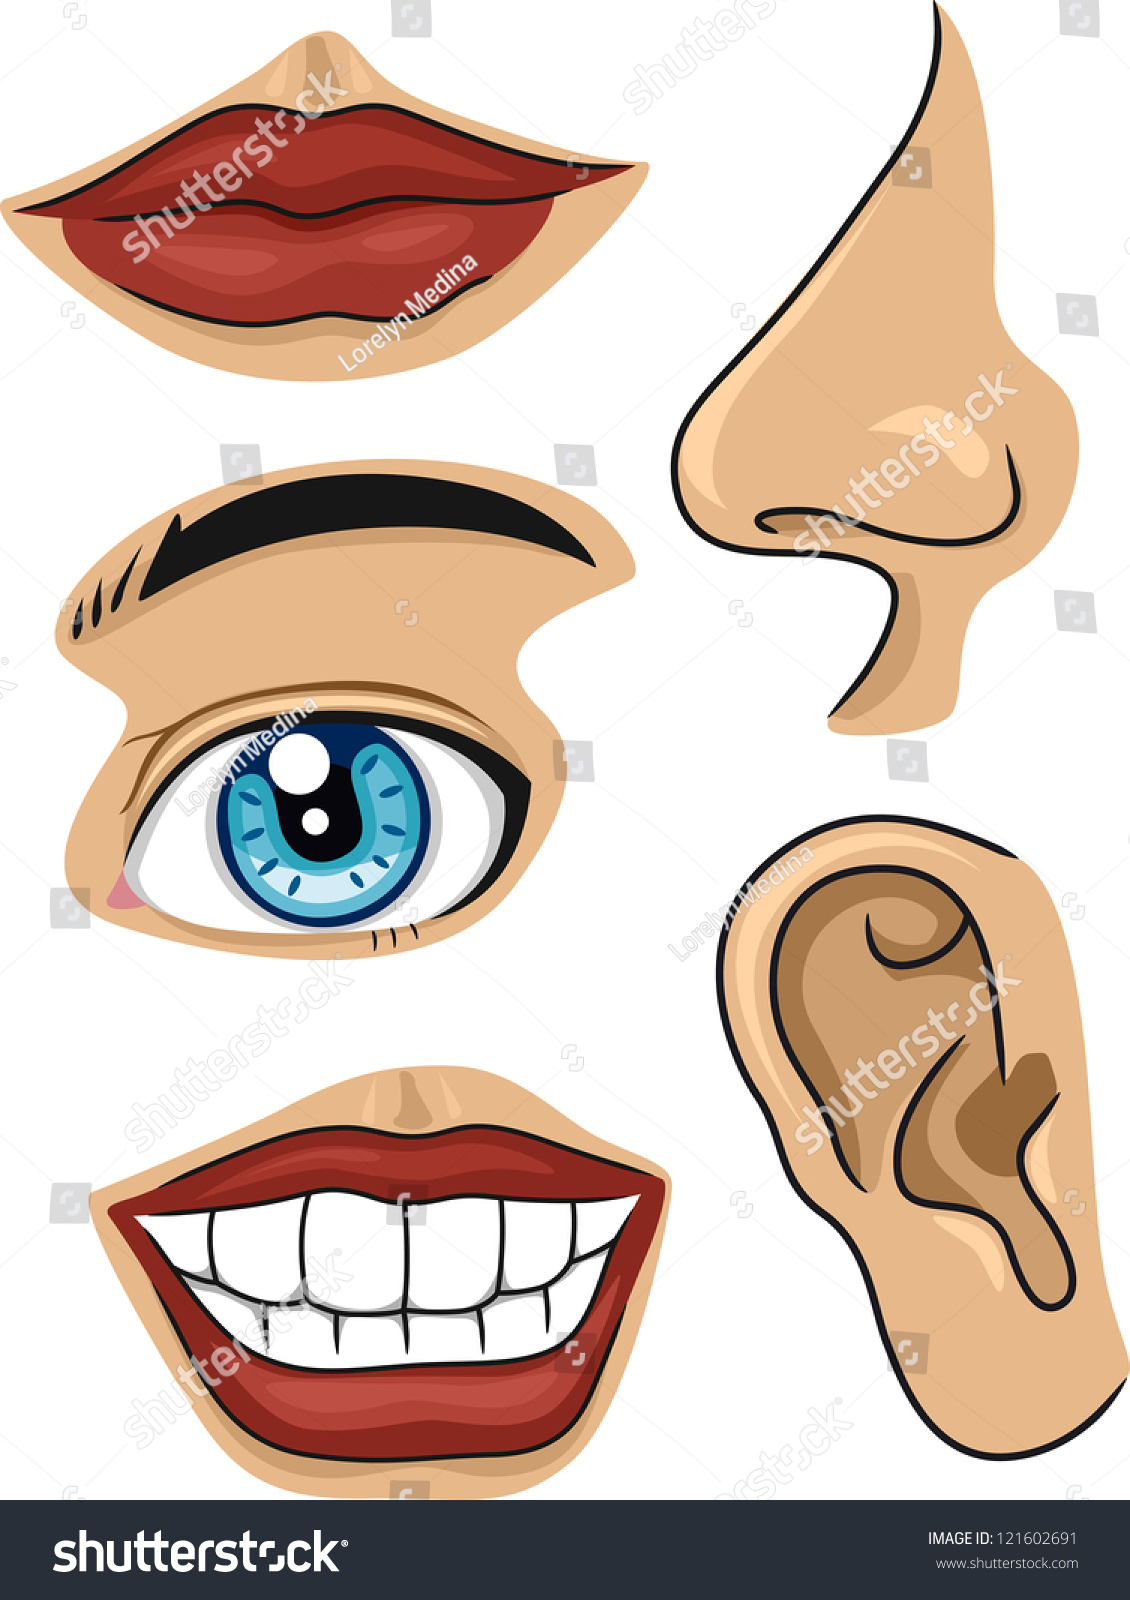 Illustration Of Different Parts Of The Face